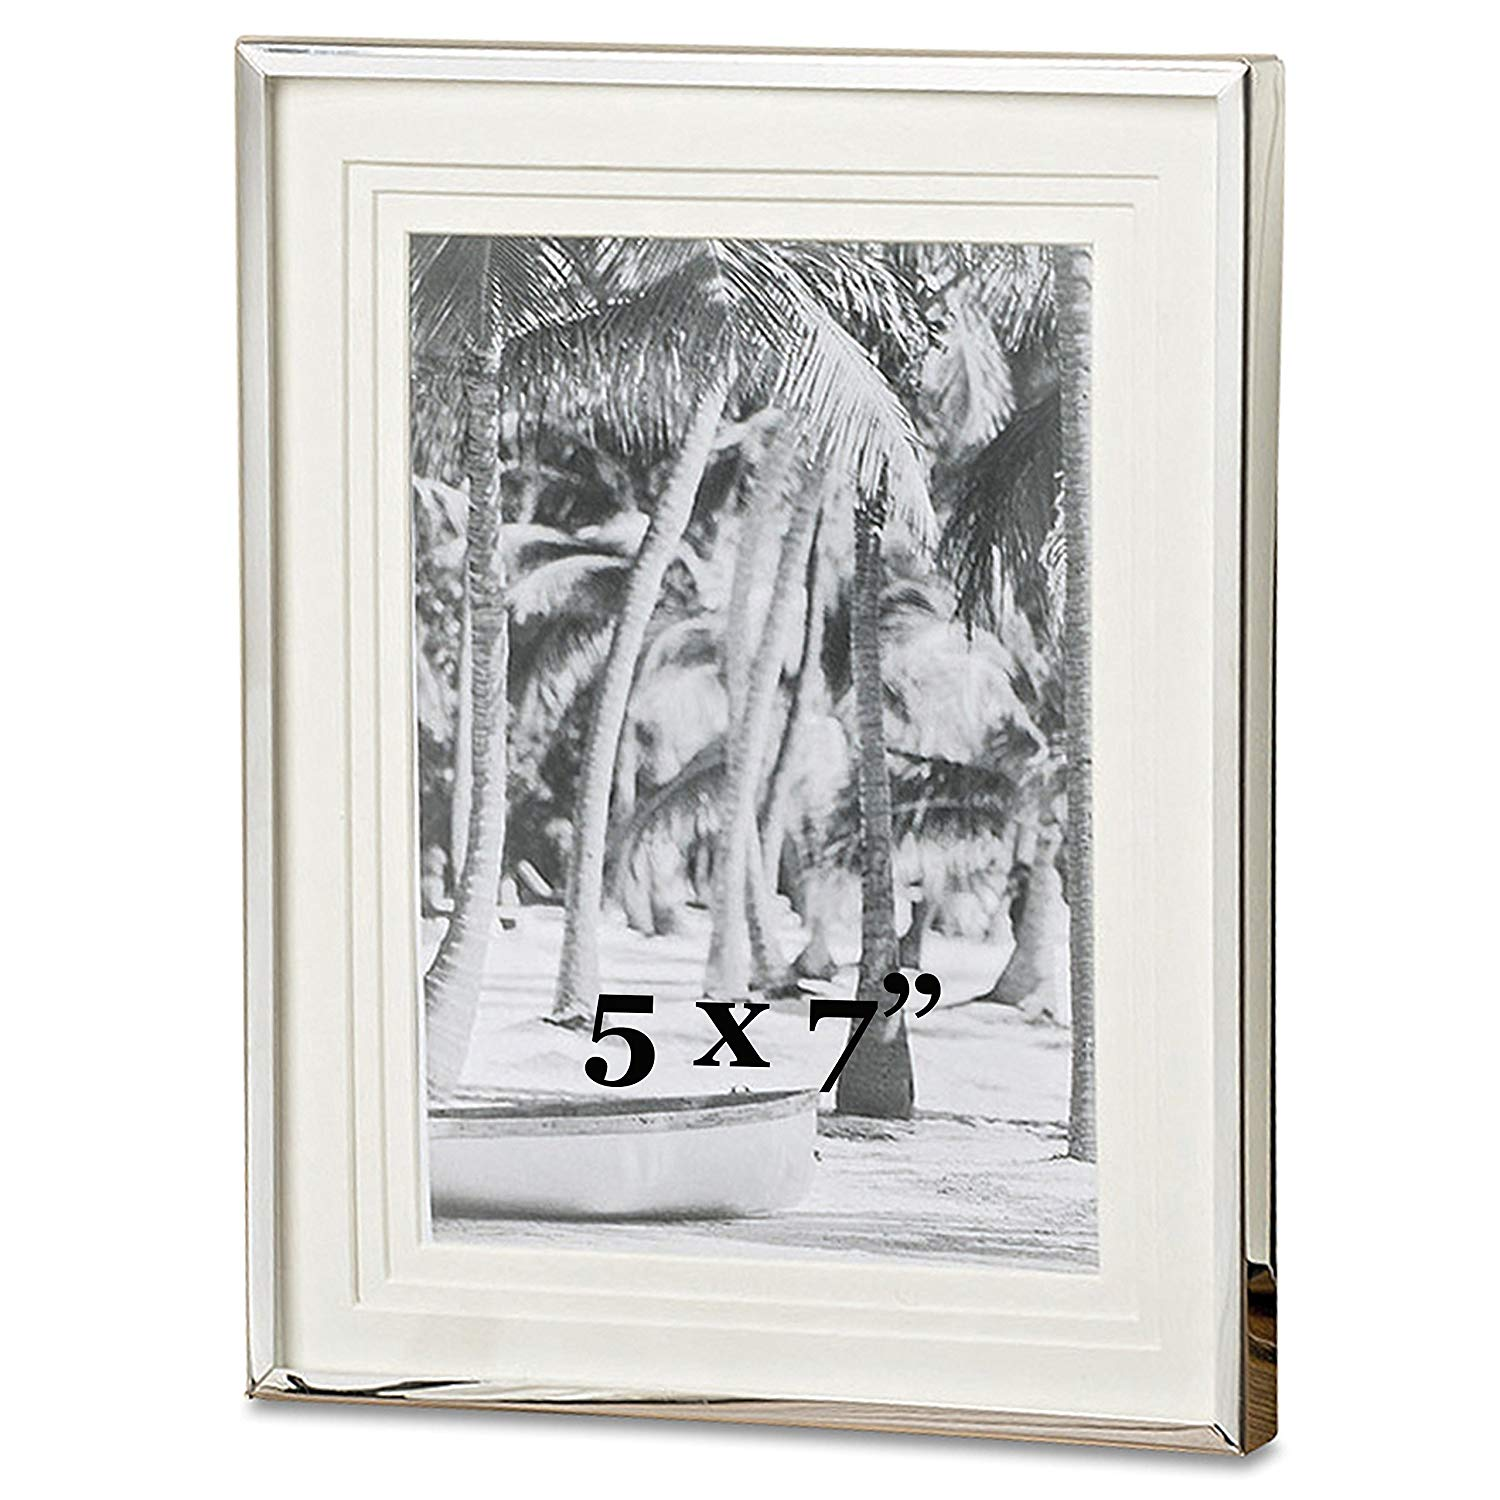 Whole House Worlds The Crosby Street Classic Photo Frame, Silver Aluminum, Triple Beveled Matte, For 5 x 7 Inch Prints, Overall Size is 7 1/4 W x 9 1/2 H Inches, Velvet Back, Swing Out Stand, By WHW